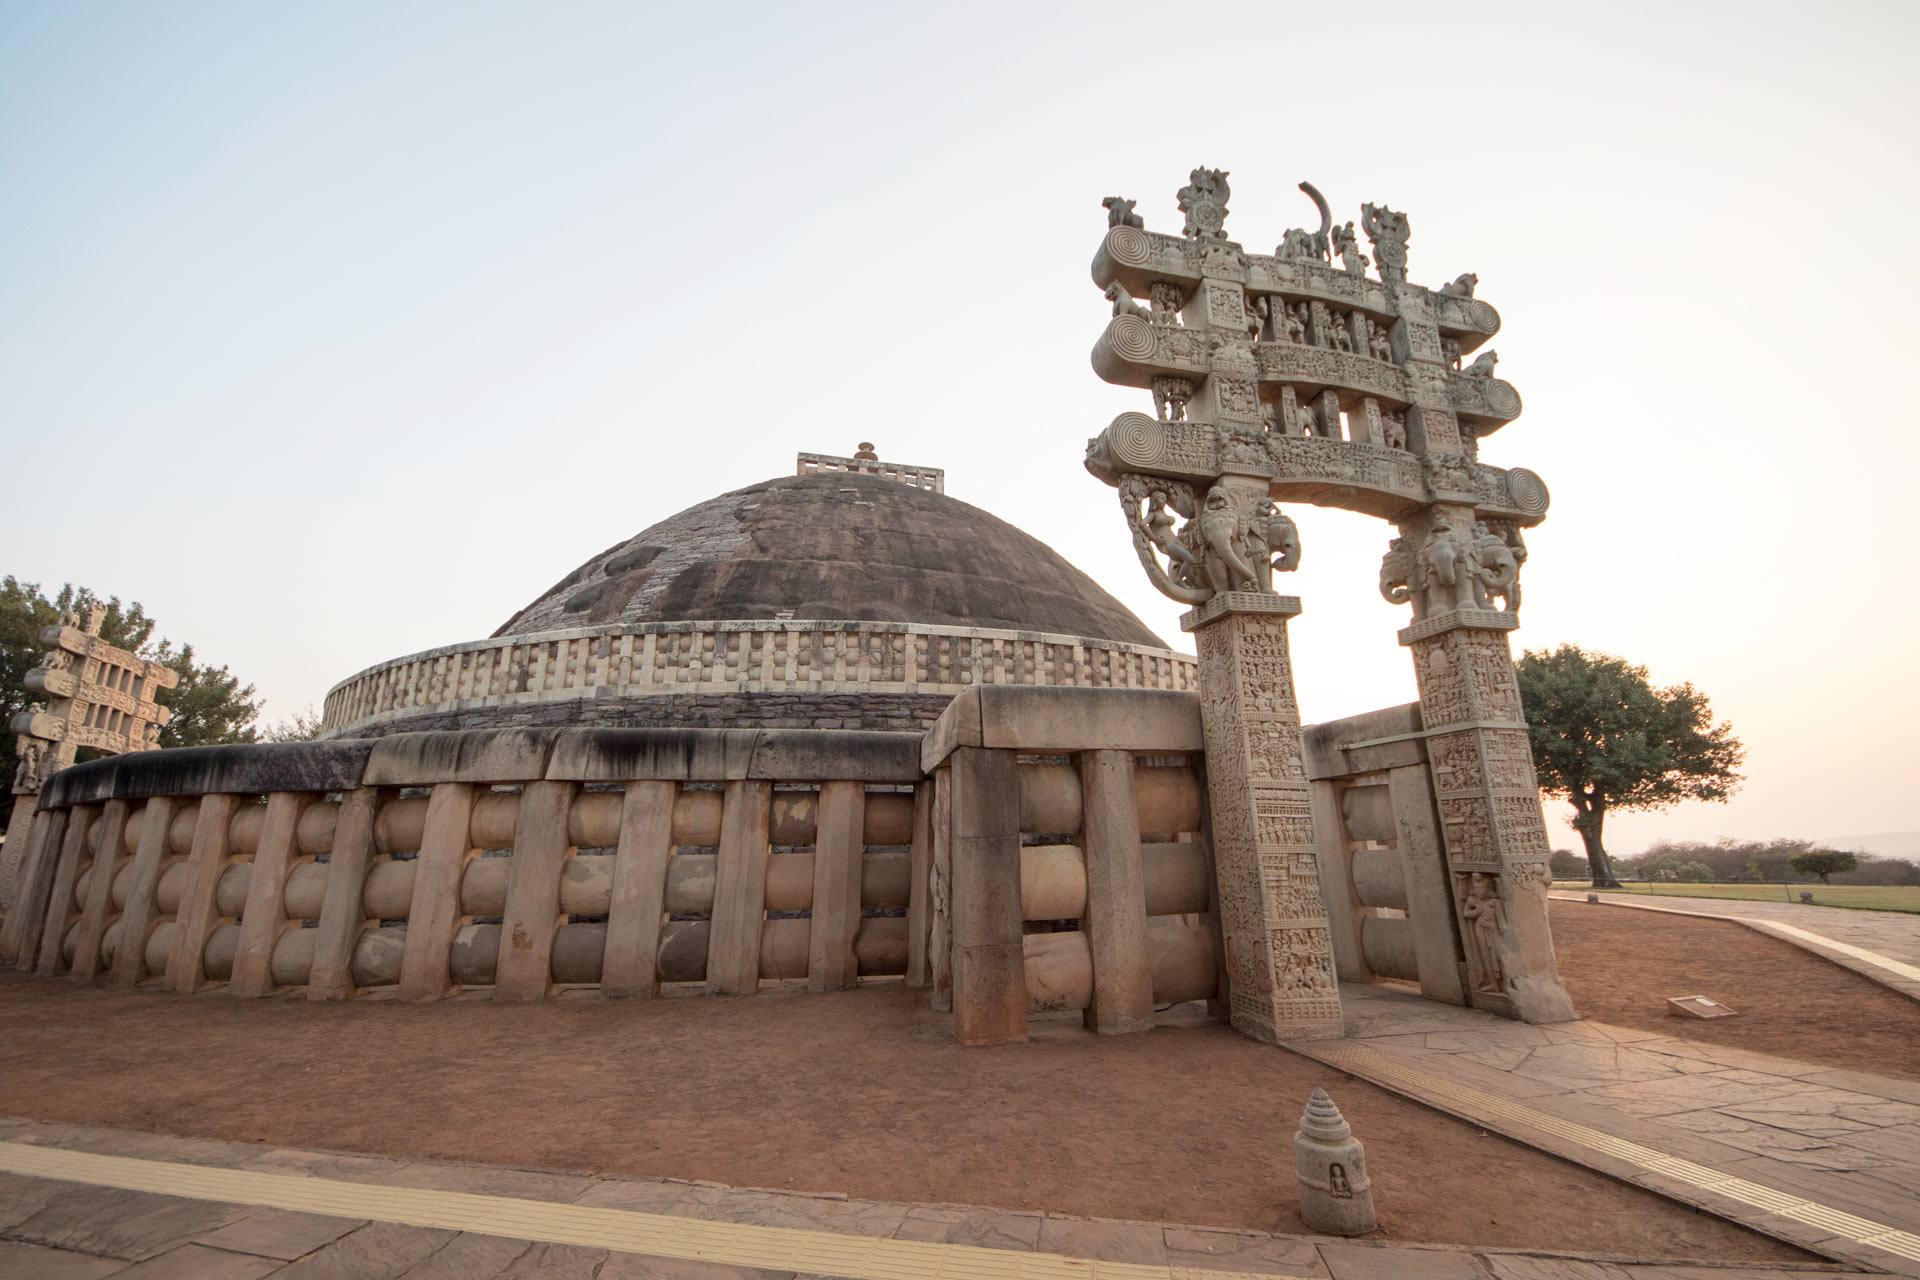 Northern Gate in front of the Great Stupa (No.1), Sanchi, Madhya Pradesh, India